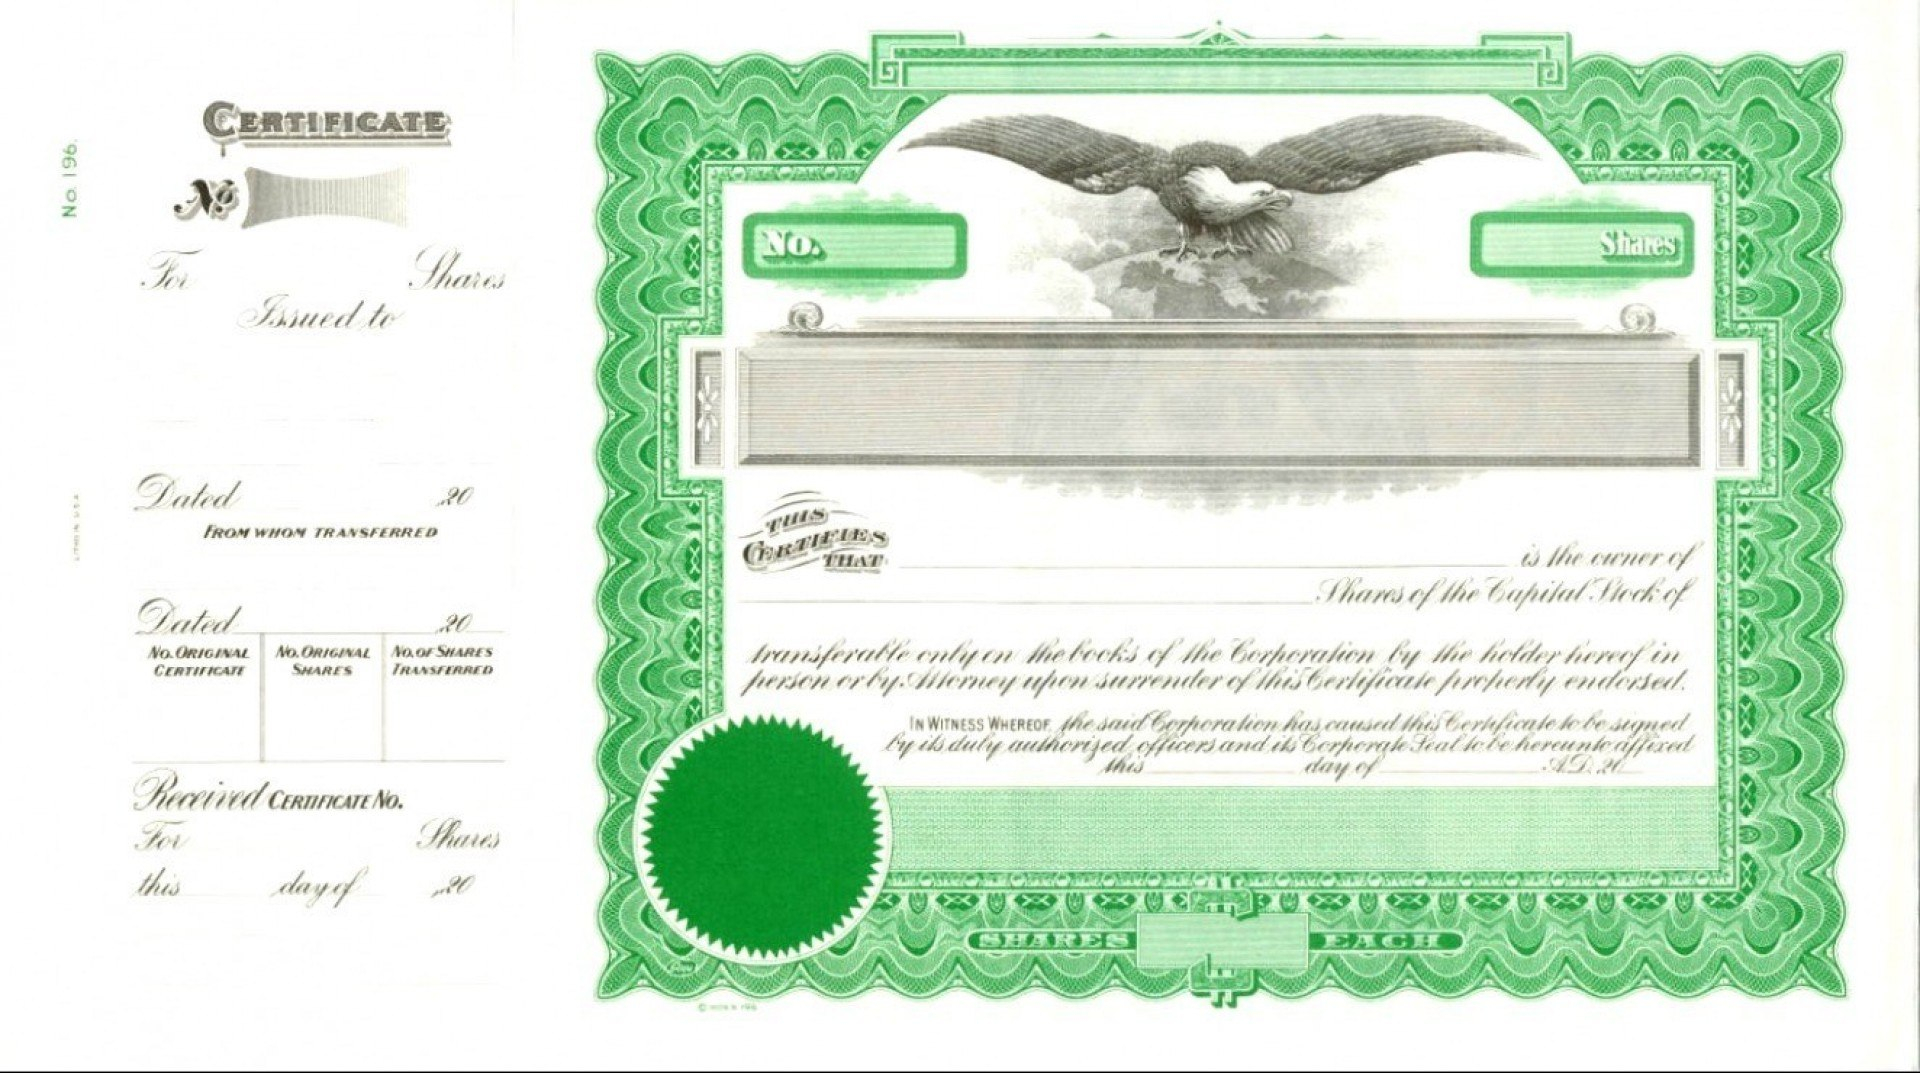 Template Ideas Free Stock Certificate Form Vector Illustration Pertaining To Free Stock Certificate Template Download